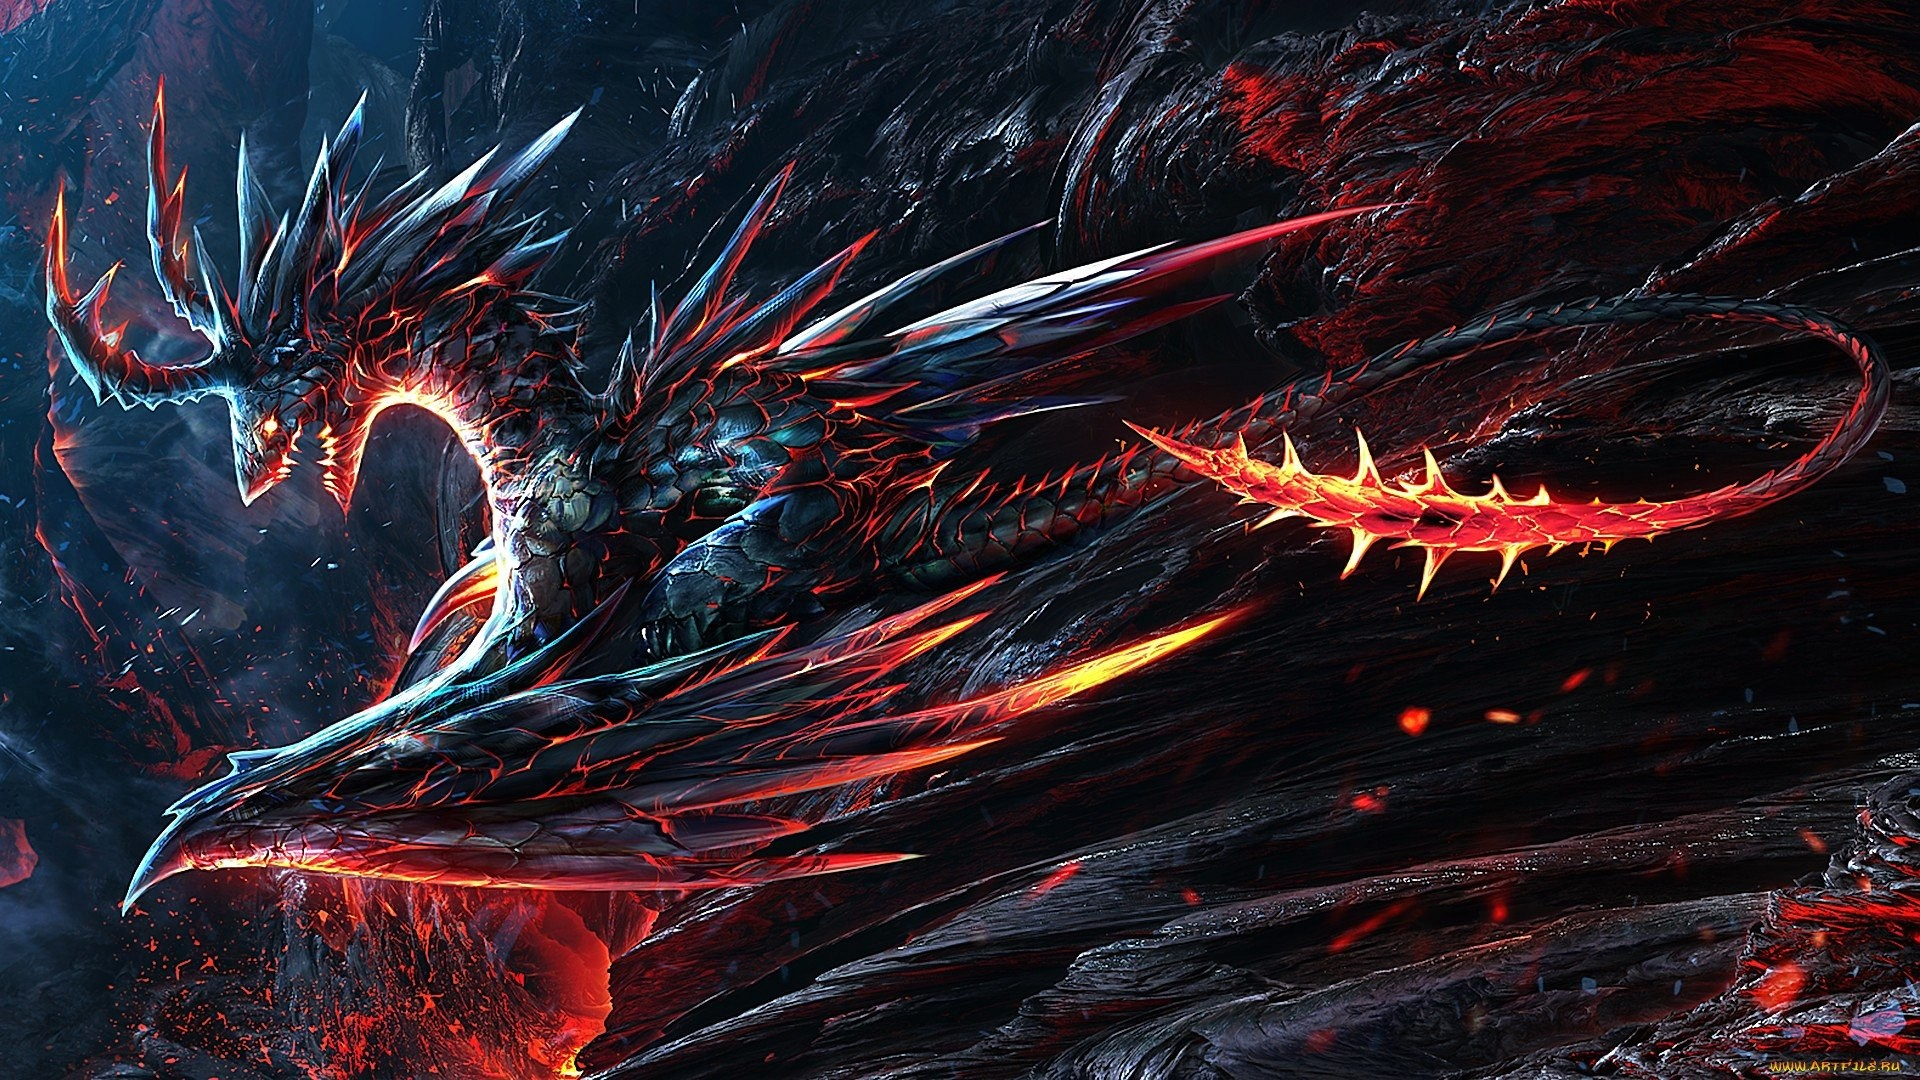 Msi gaming dragon wallpaper 86 images - Dragon backgrounds 1920x1080 ...